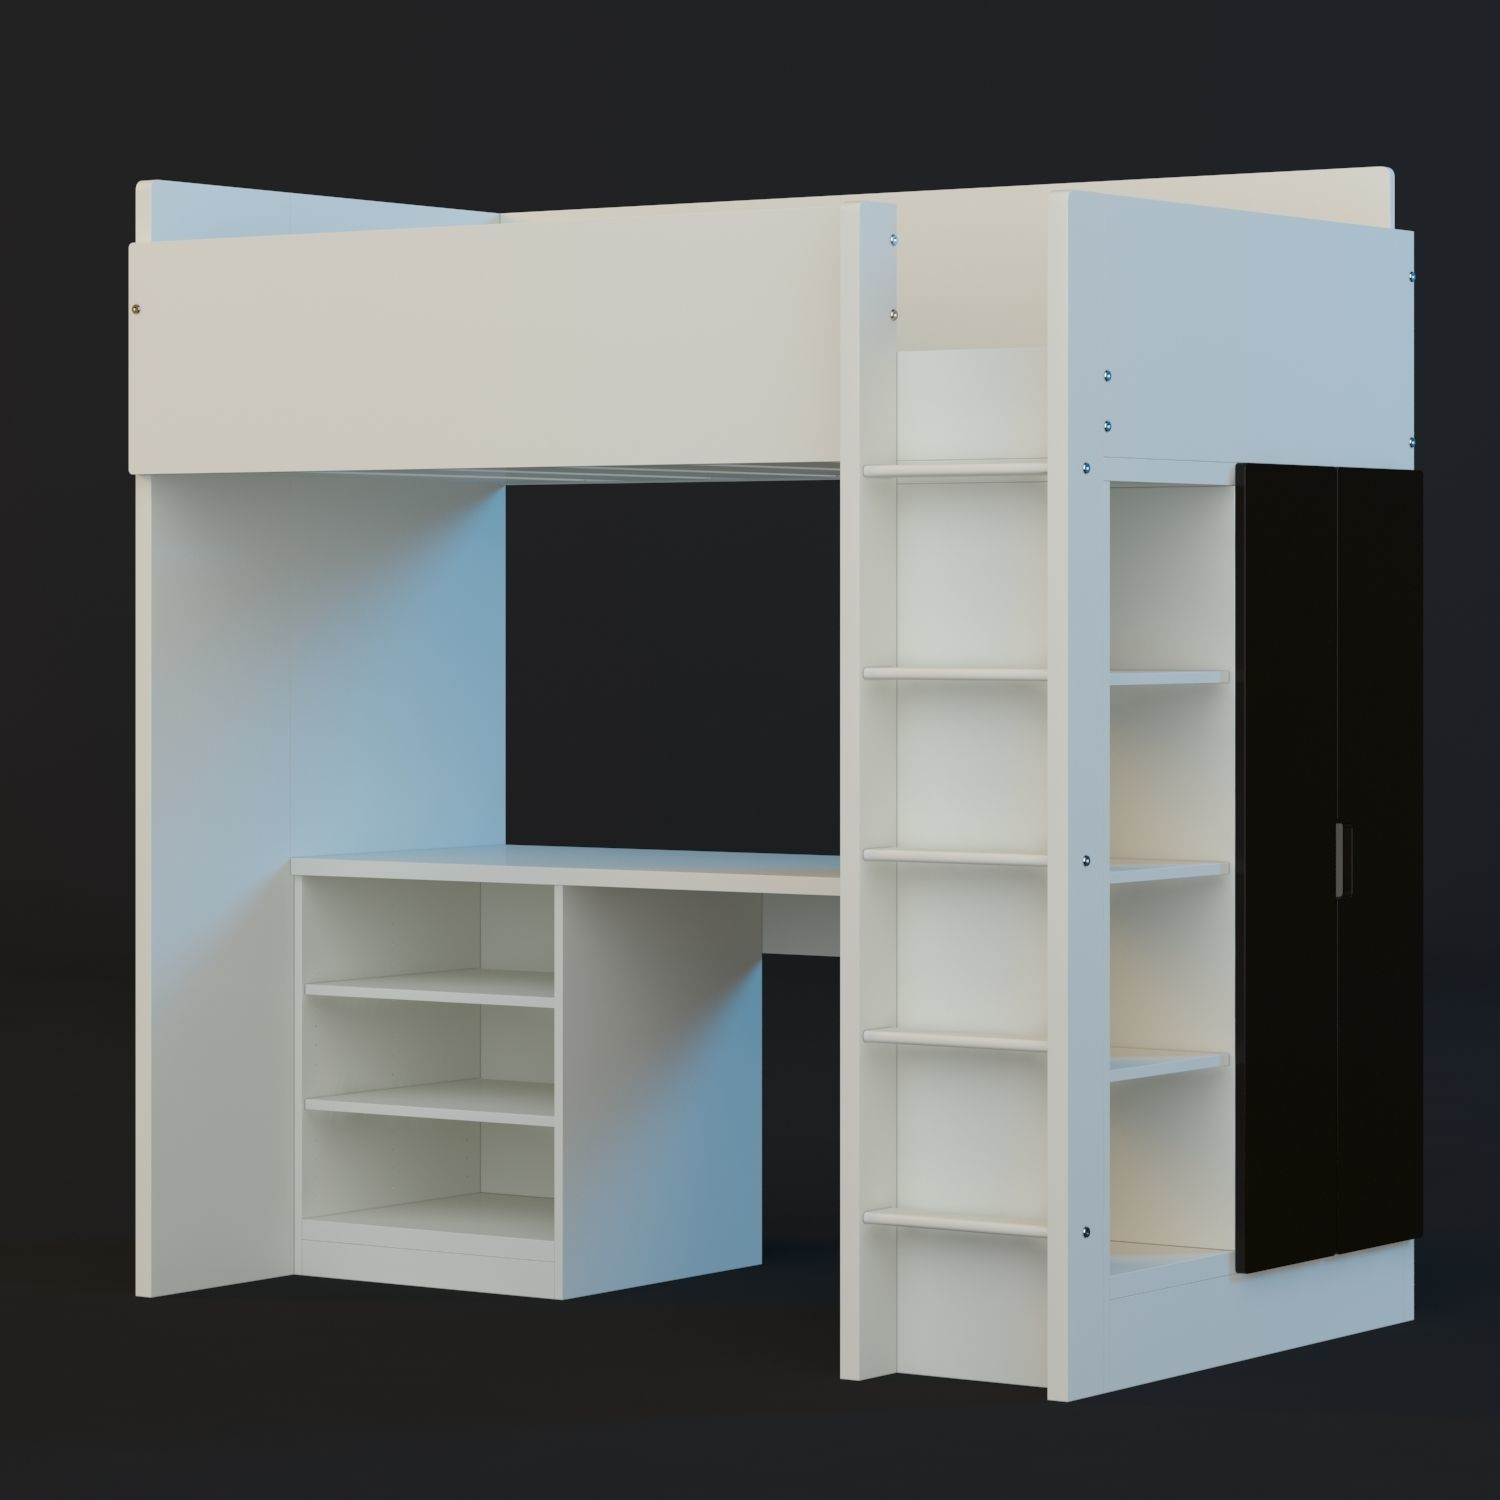 Ikea Stuva Loft Bed 3d Model Cgtrader